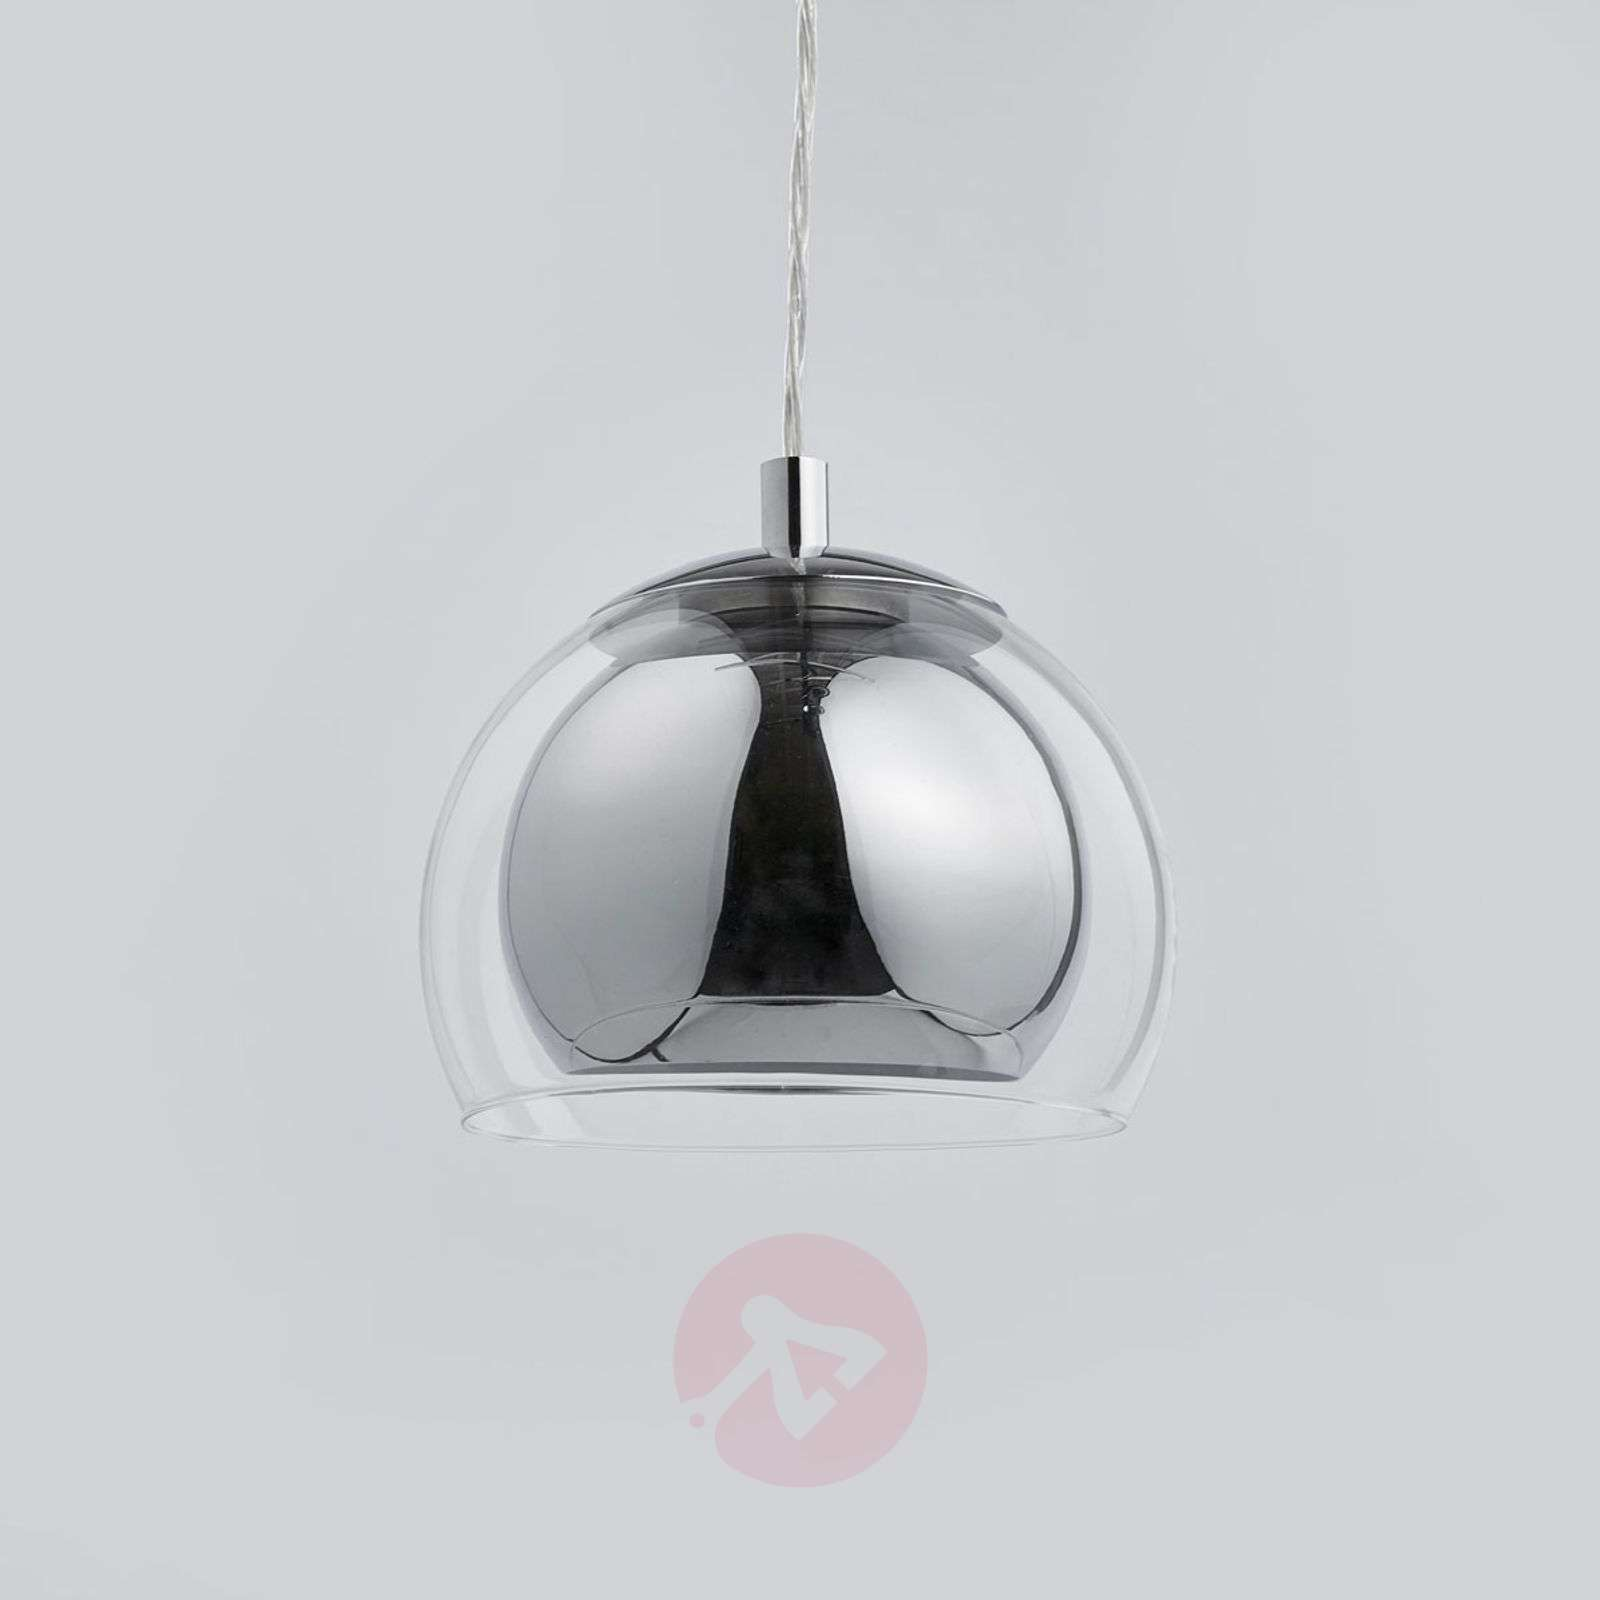 Rocamar elegant pendant light-3031940-01